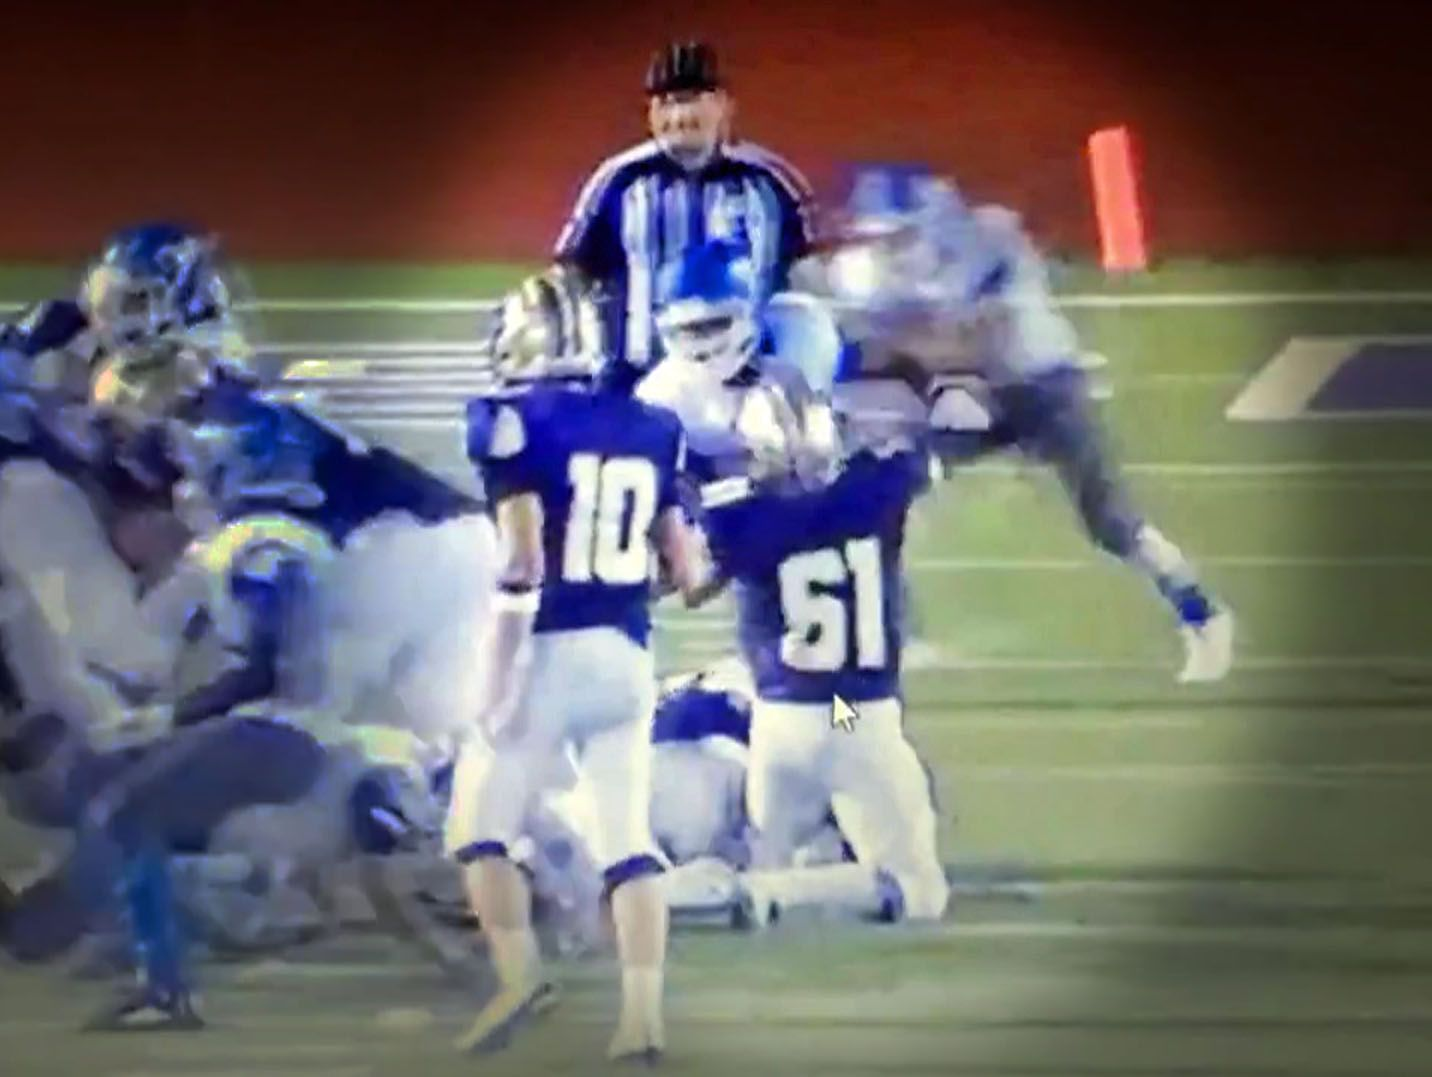 A video clip posted on YouTube by Greg Gibson appears to show a referee being targeted by a player at the game between John Jay and Marble Falls high schools on September 4, 2015.